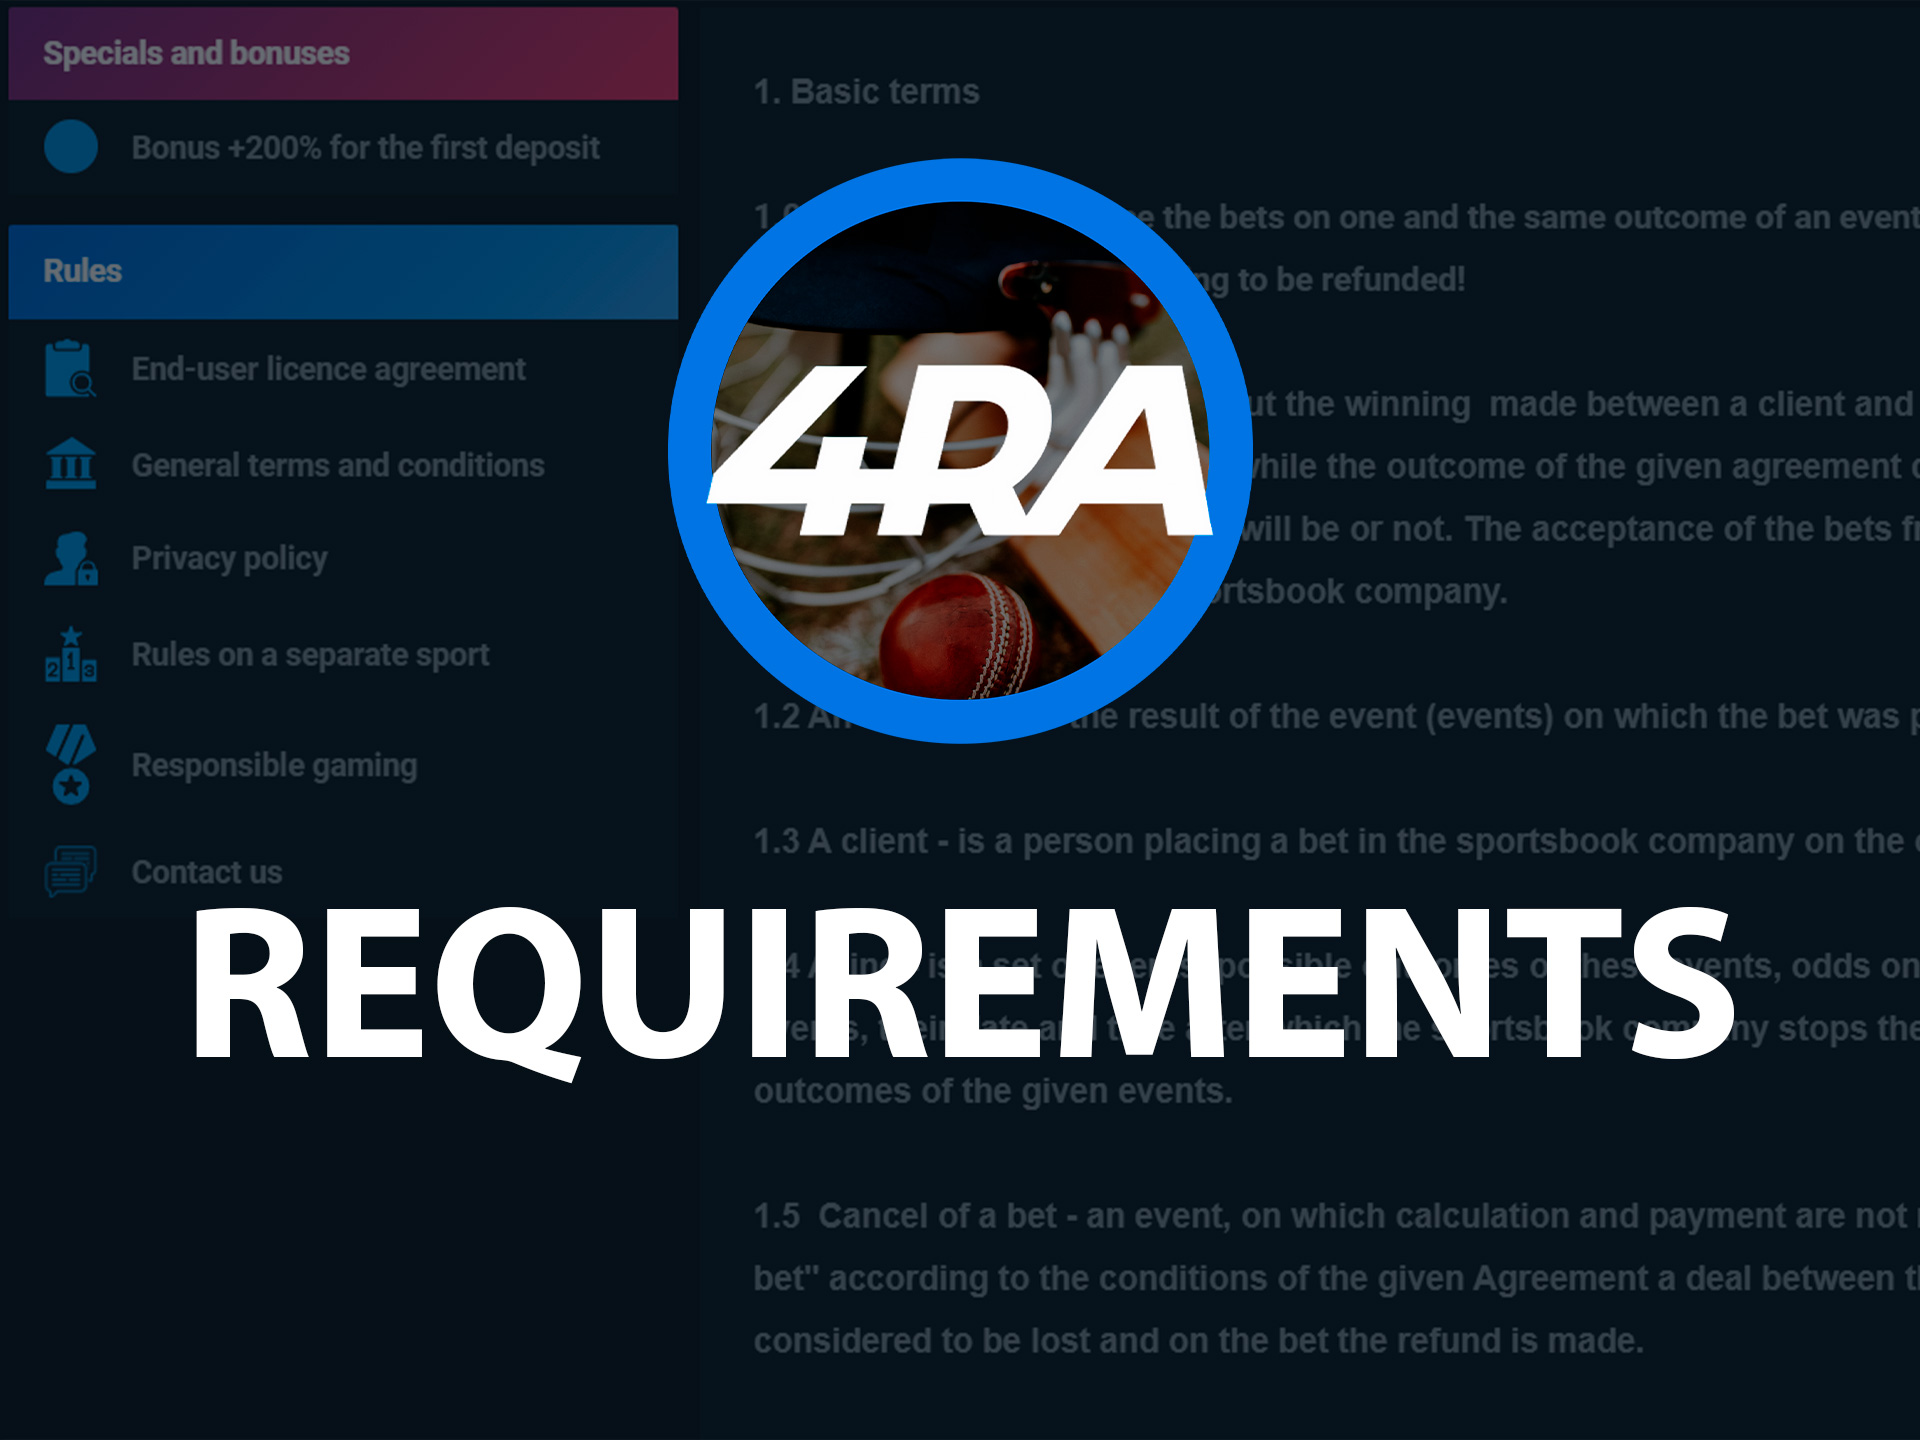 Meet the requirements to have no problems with registration at 4rabet.